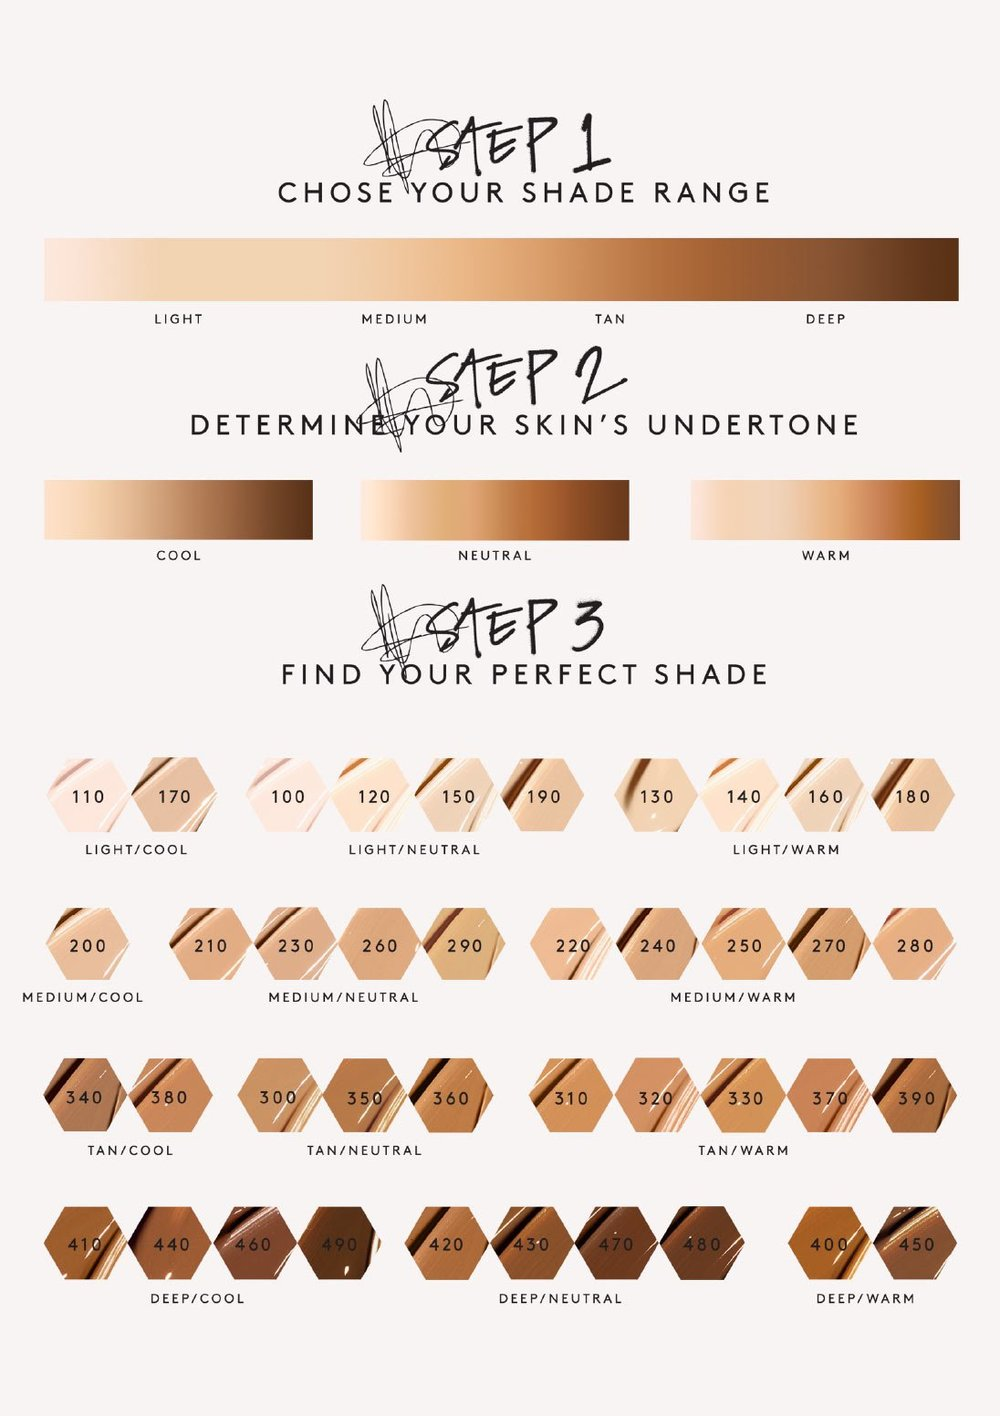 Fenty Beauty's shade range, photo via  Sephora